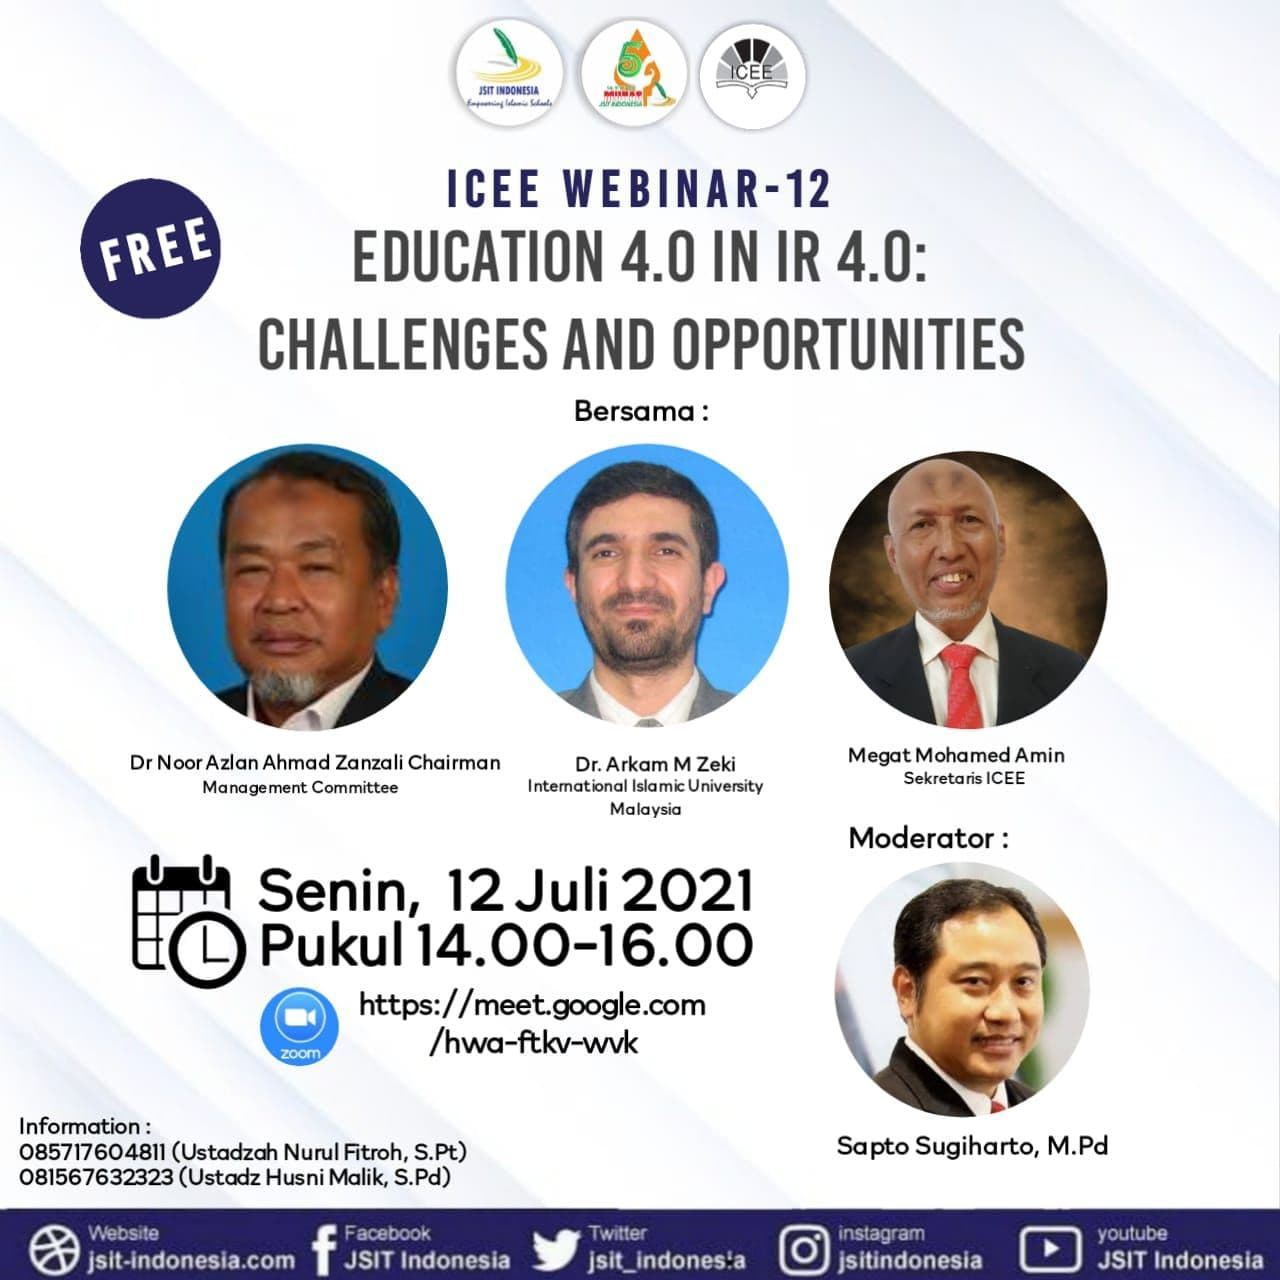 EDUCATION 4.0 IN IR4.0:CHALLENGES AND OPPORTUNITIES